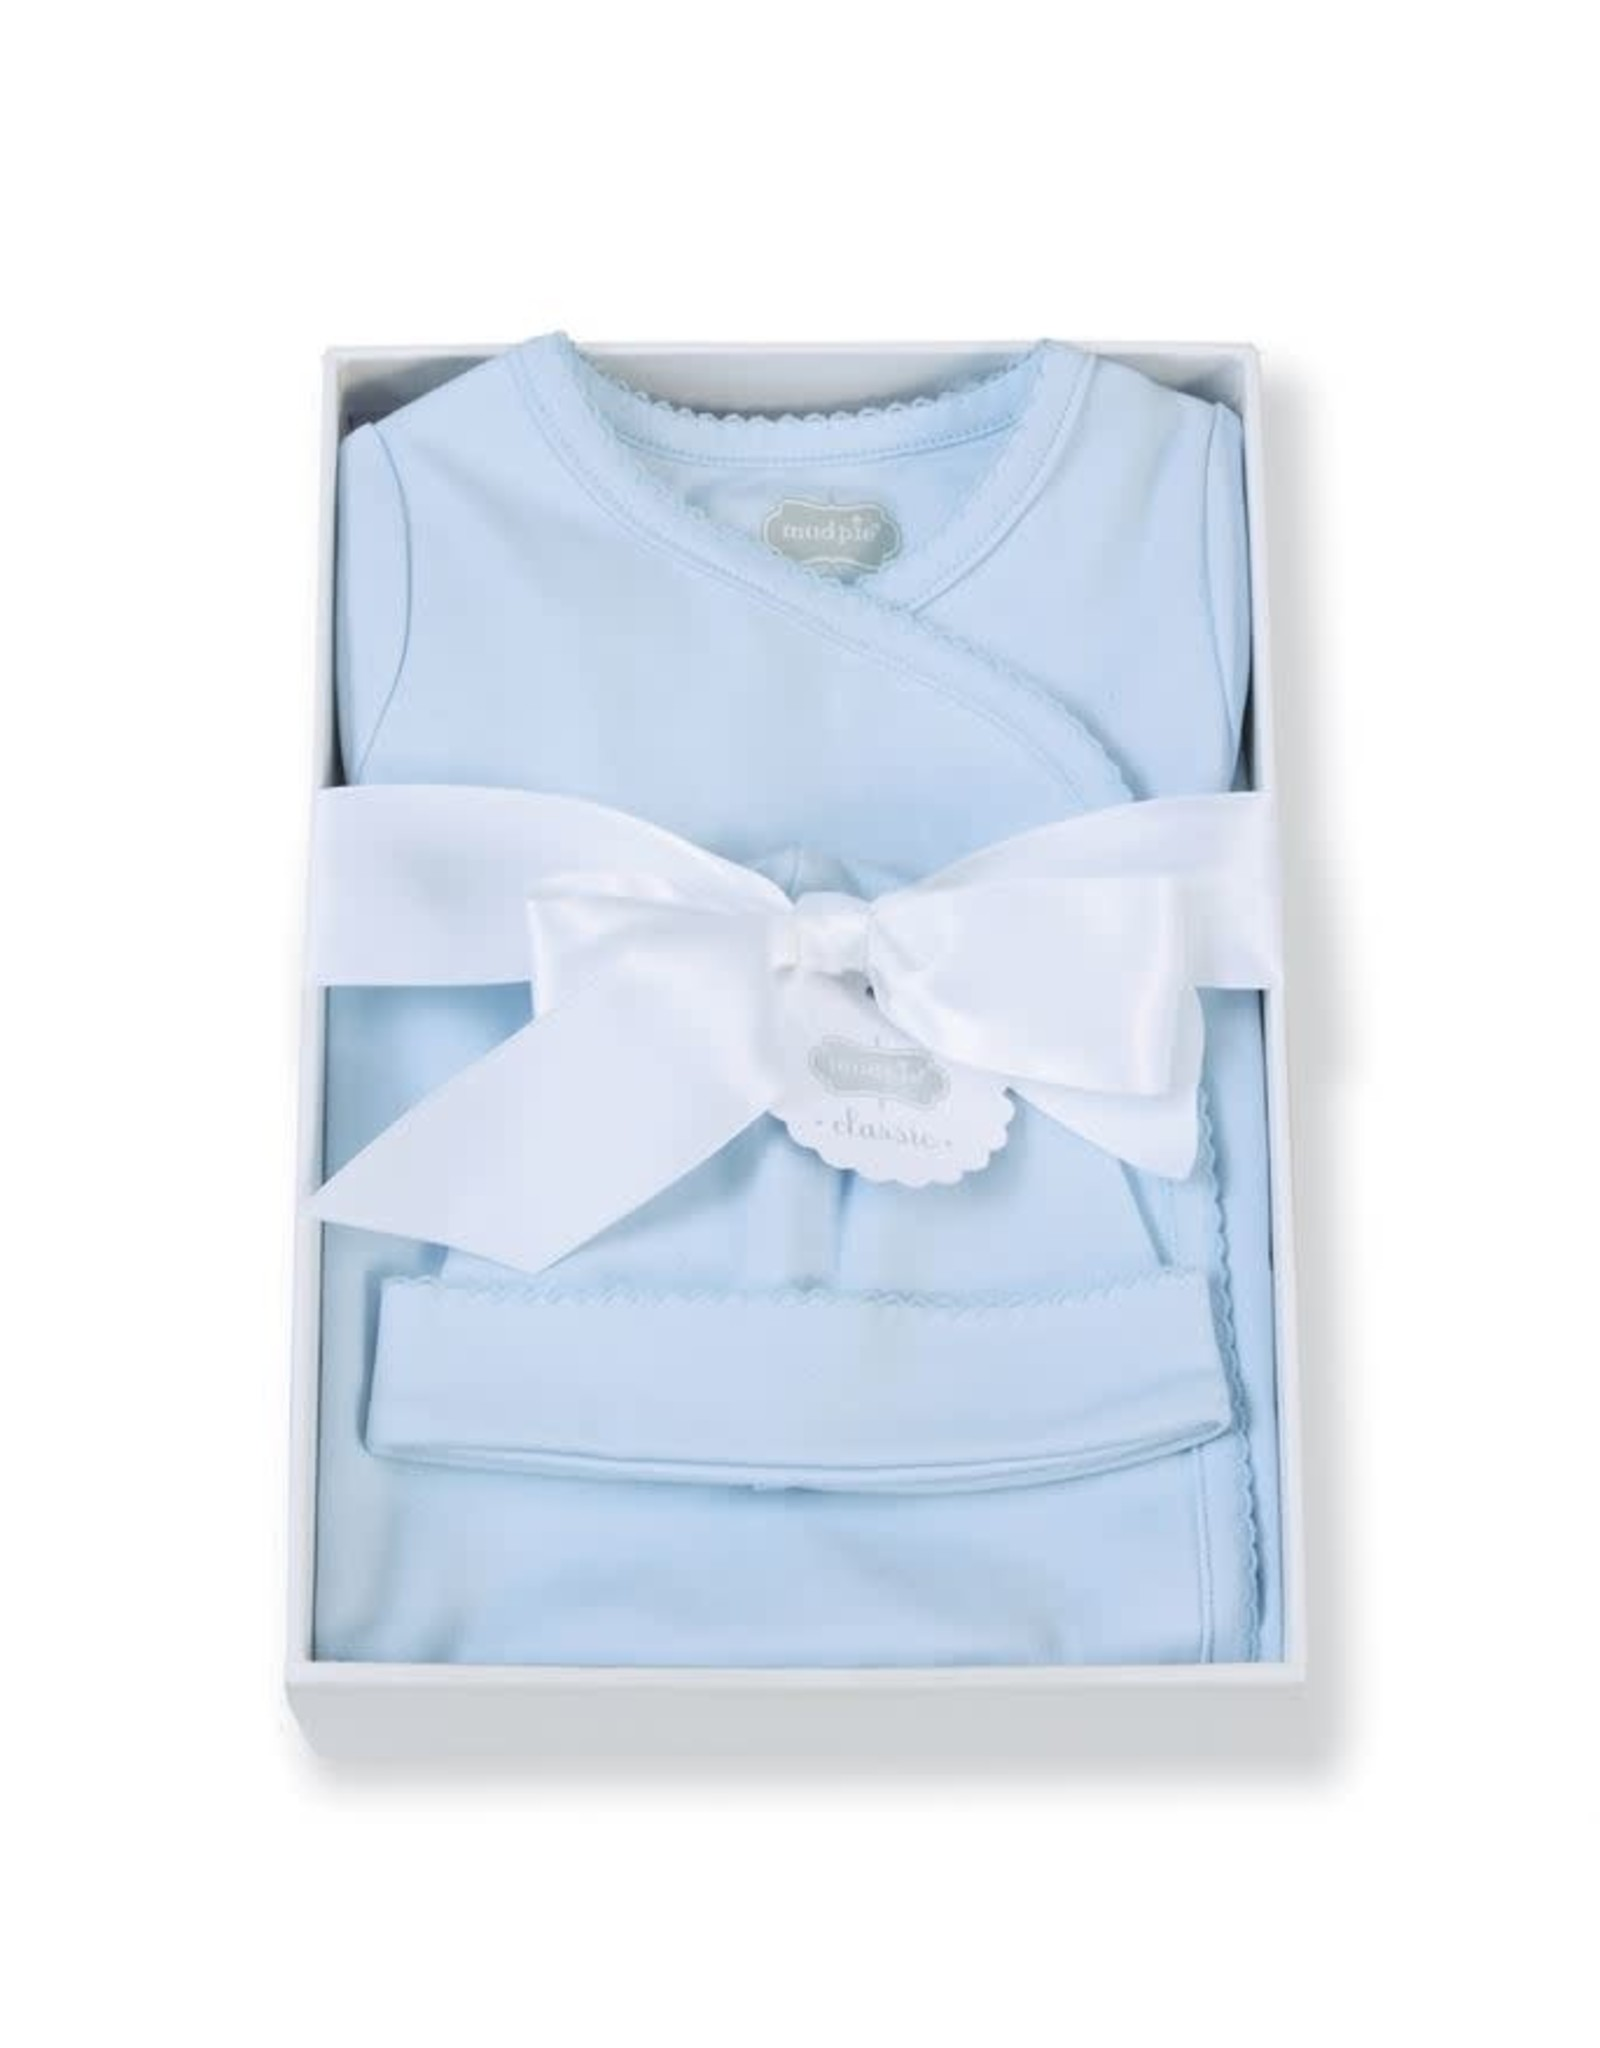 Mudpie Mud Pie - Blue Gift Set 0-3m